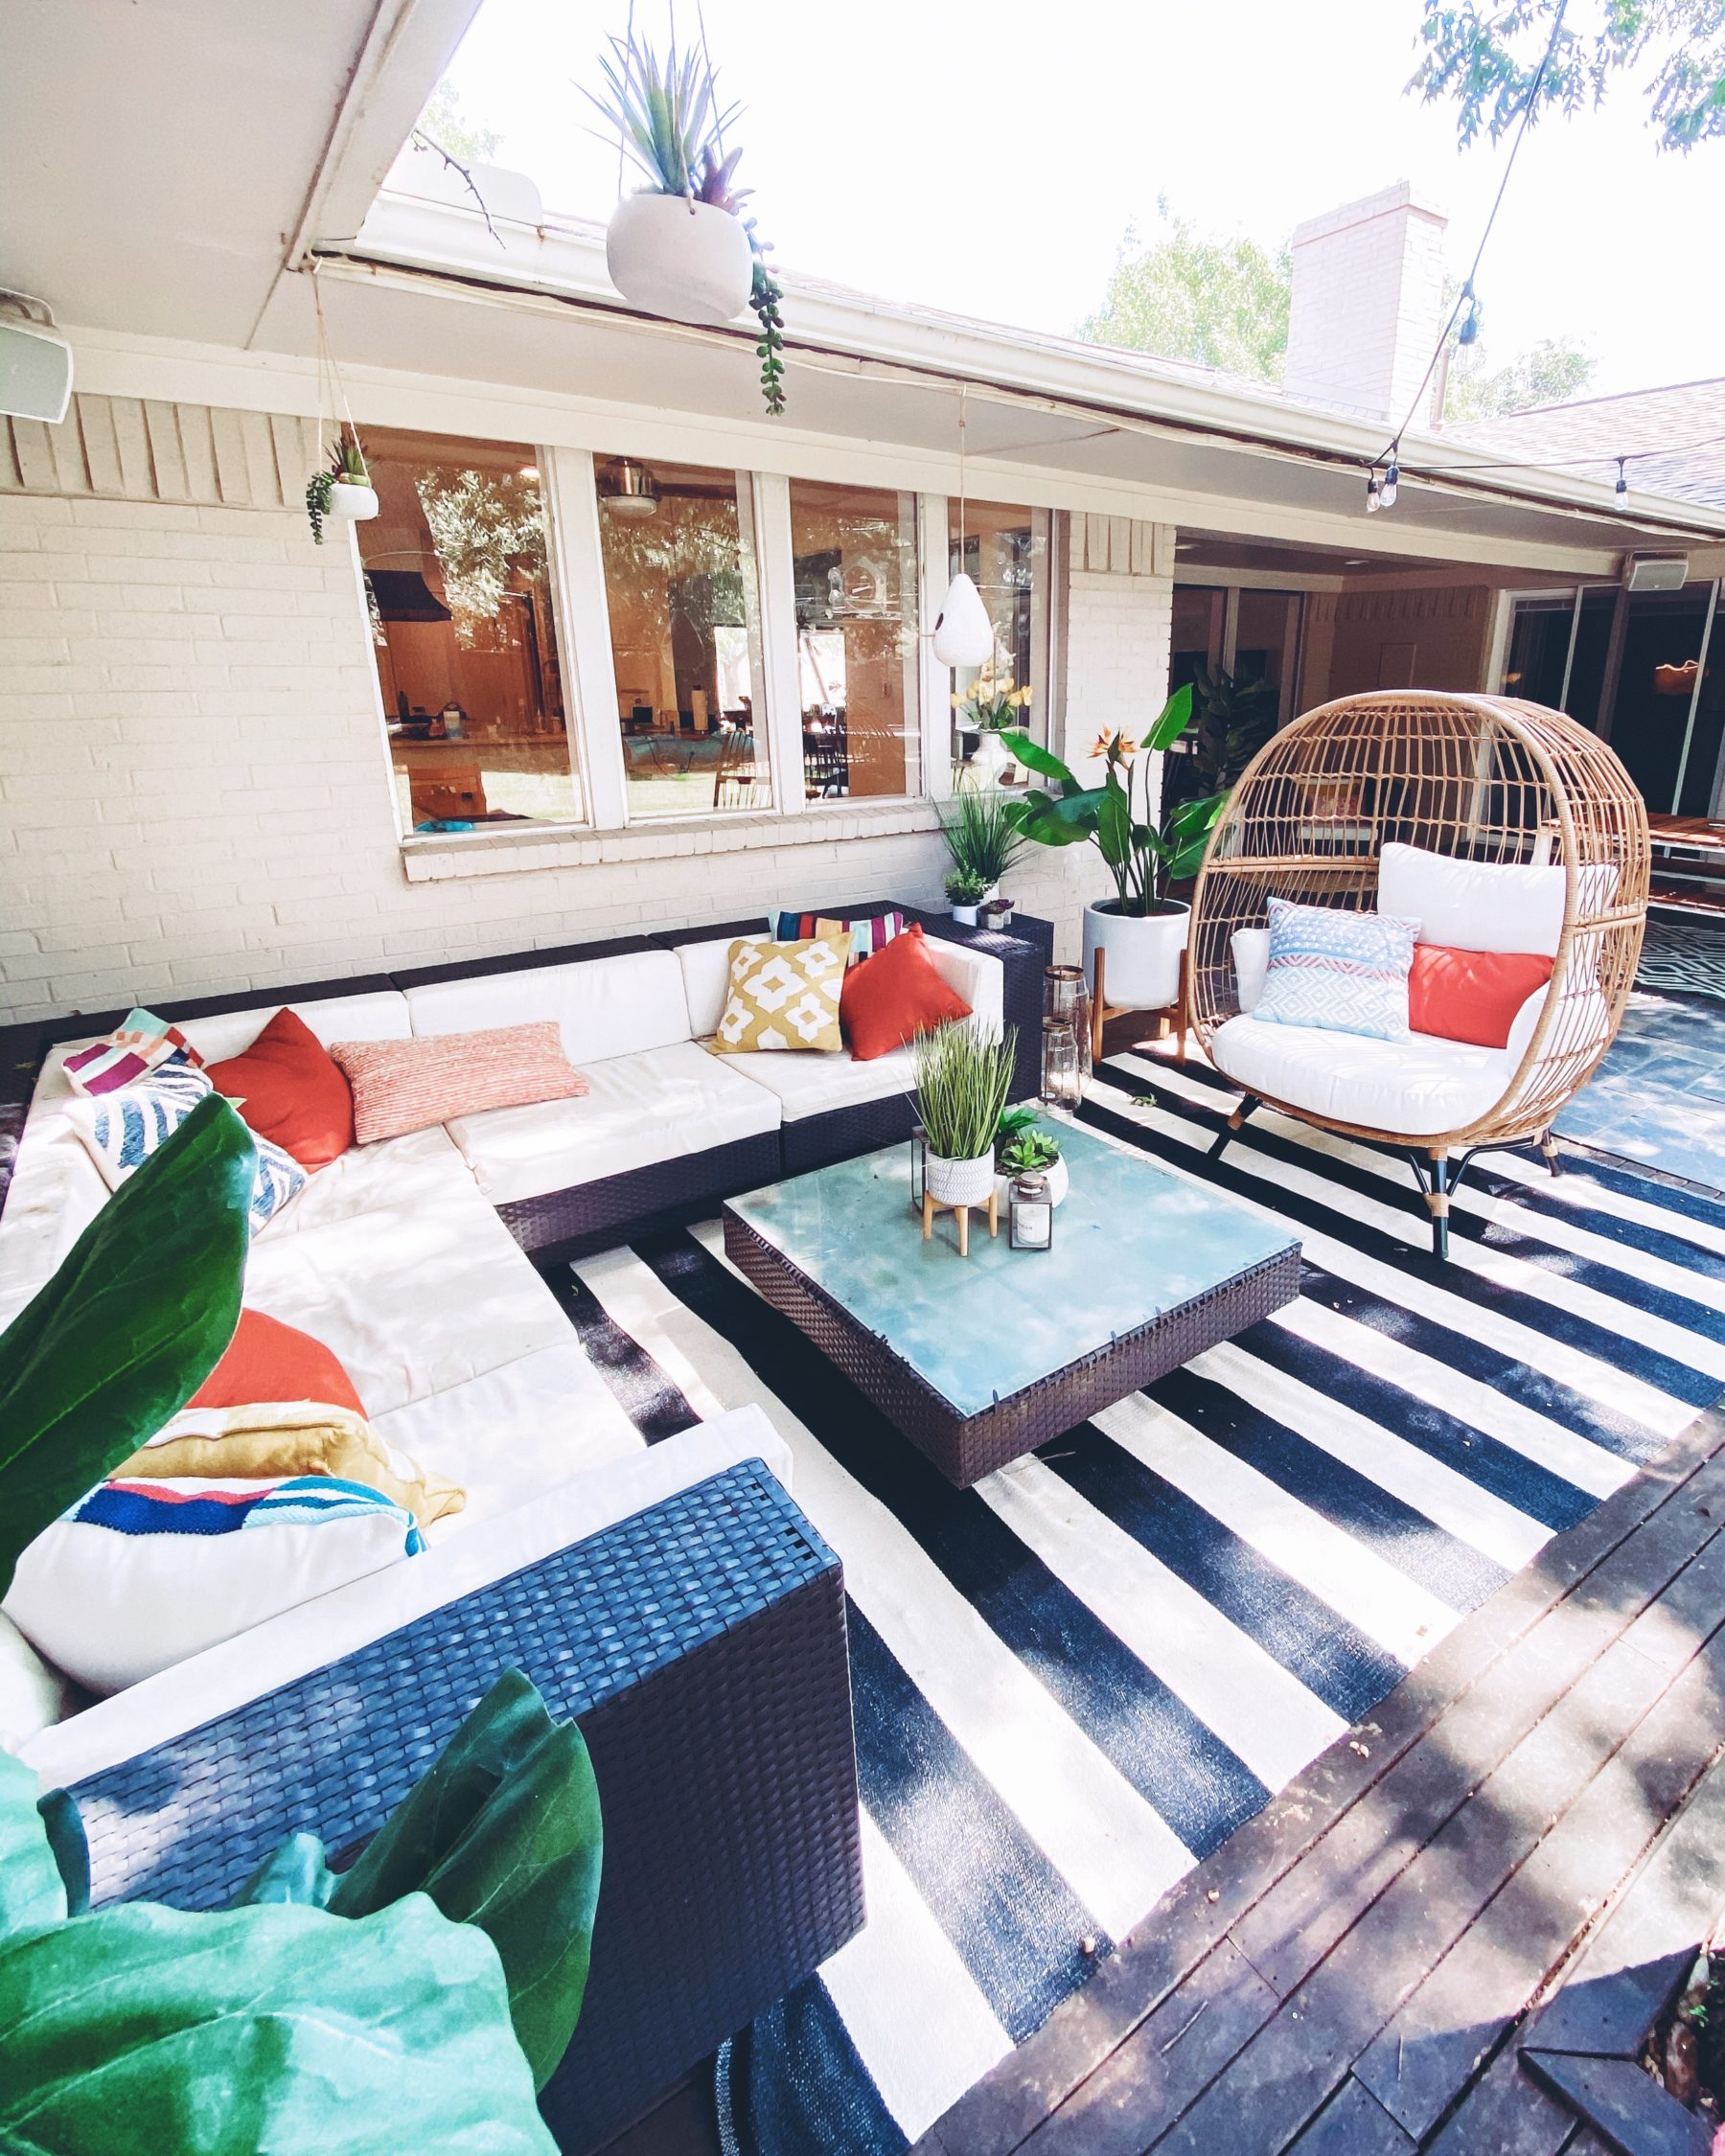 "cute & little | dallas lifestyle blog | mid-century modern outdoor patio decorating ideas | egg chair, striped rug | Mid Century Modern Backyard by popular Dallas lifestyle blog, Cute and Little: image of a backyard decorated with a Target Southport Patio Egg Chair, World Market Ceramic Sevilla Outdoor Planter, Boutique Rugs Douds Area Rug, West Elm Simple Wood Lanterns, Target Vickerman Artificial Potted Bird of Paradise Palm Tree, Pottery Barn Faux Potted Succulent in Ceramic Bowl, outdoor sectional couch and Target 12"" x 10"" Artificial Eucalyptus Plant Arrangement in Pot."